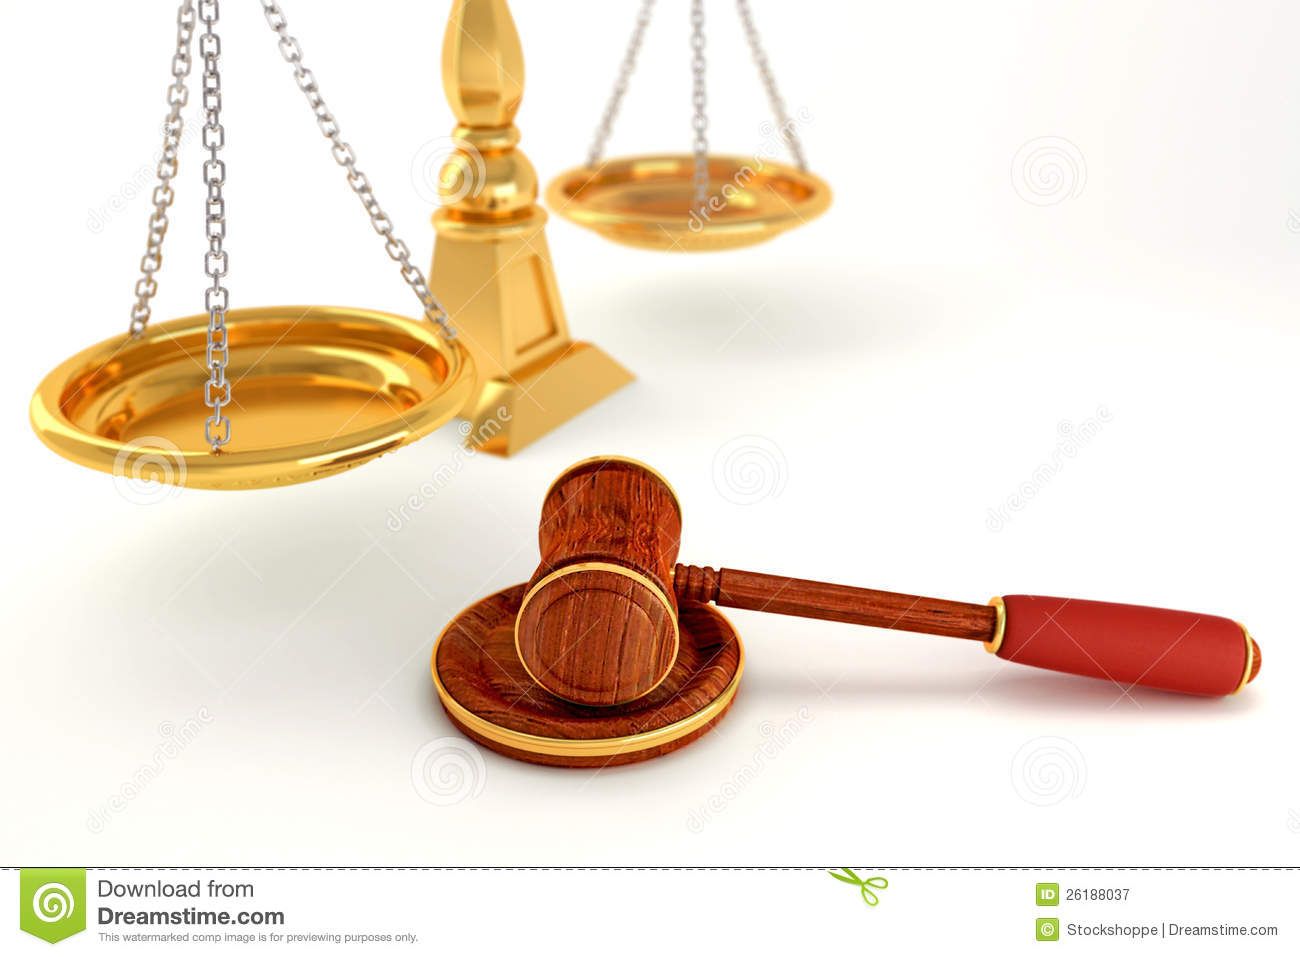 Free Clip Art Gavels Or Weights Law Wooden Law Gavel With Scale